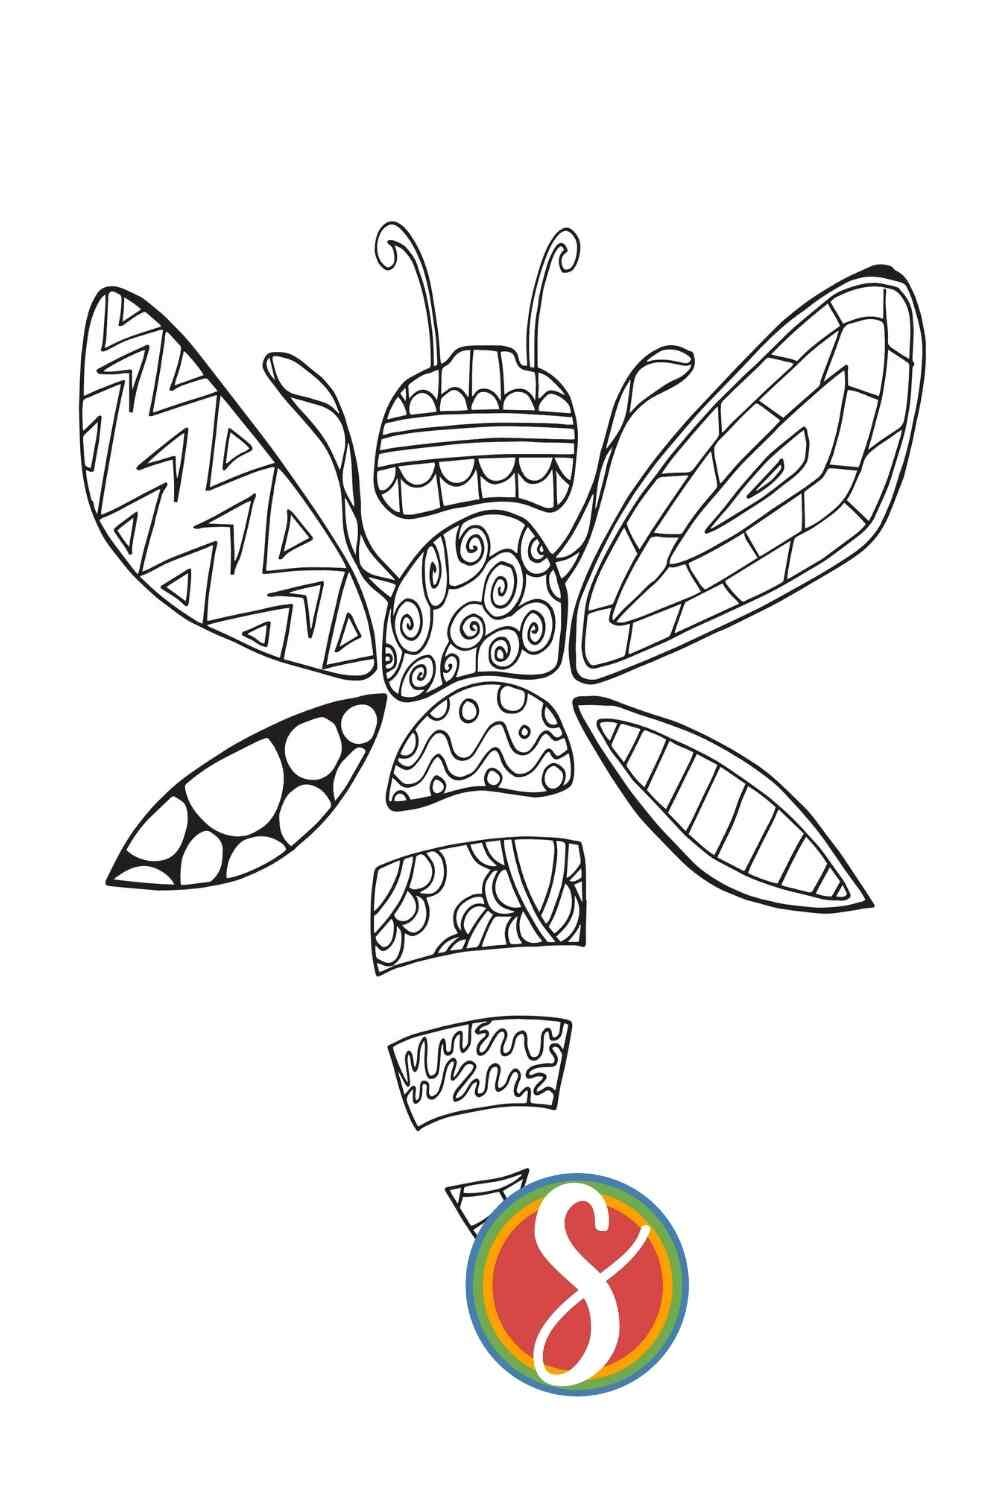 A doodle bee! Free printable bee coloring page from Stevie Doodles. Find more and more free bee pages here